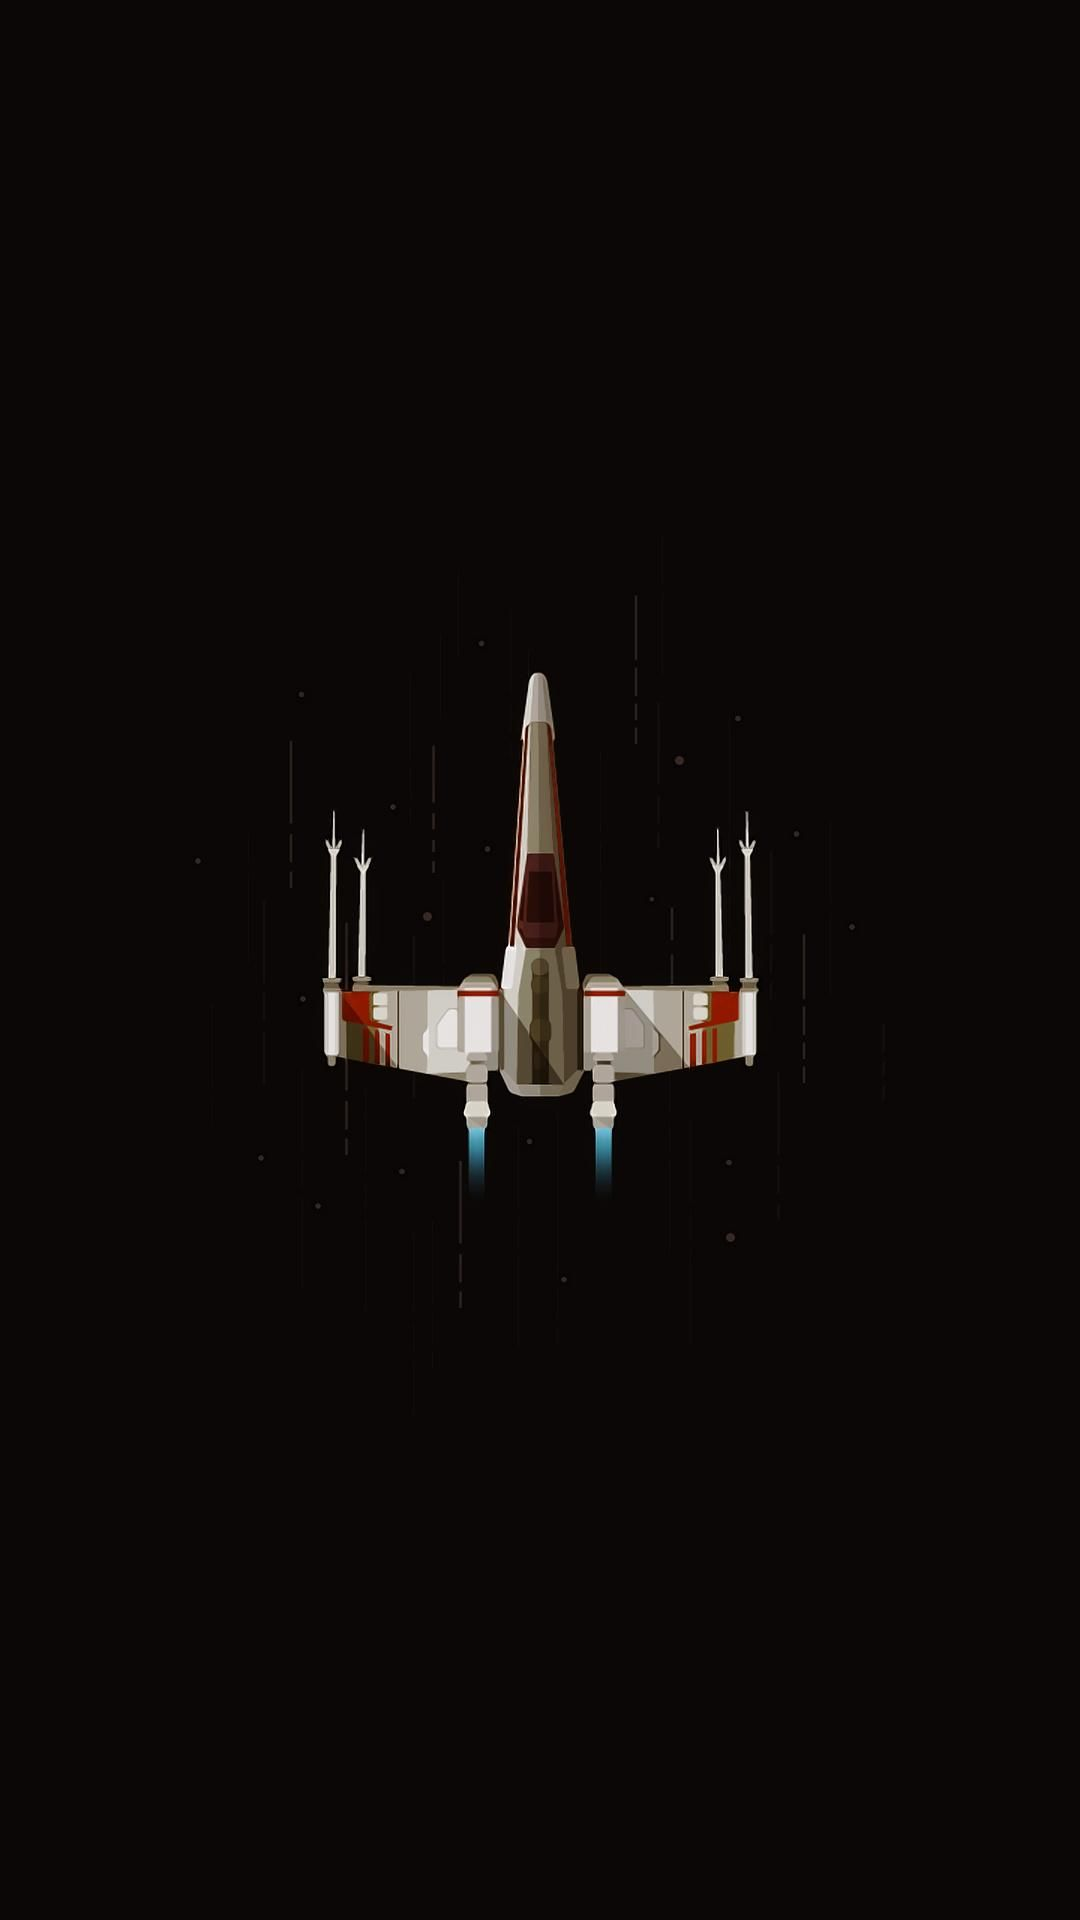 X Wing Fighter Star Wars Wallpaper Star Wars Painting Star Wars Poster